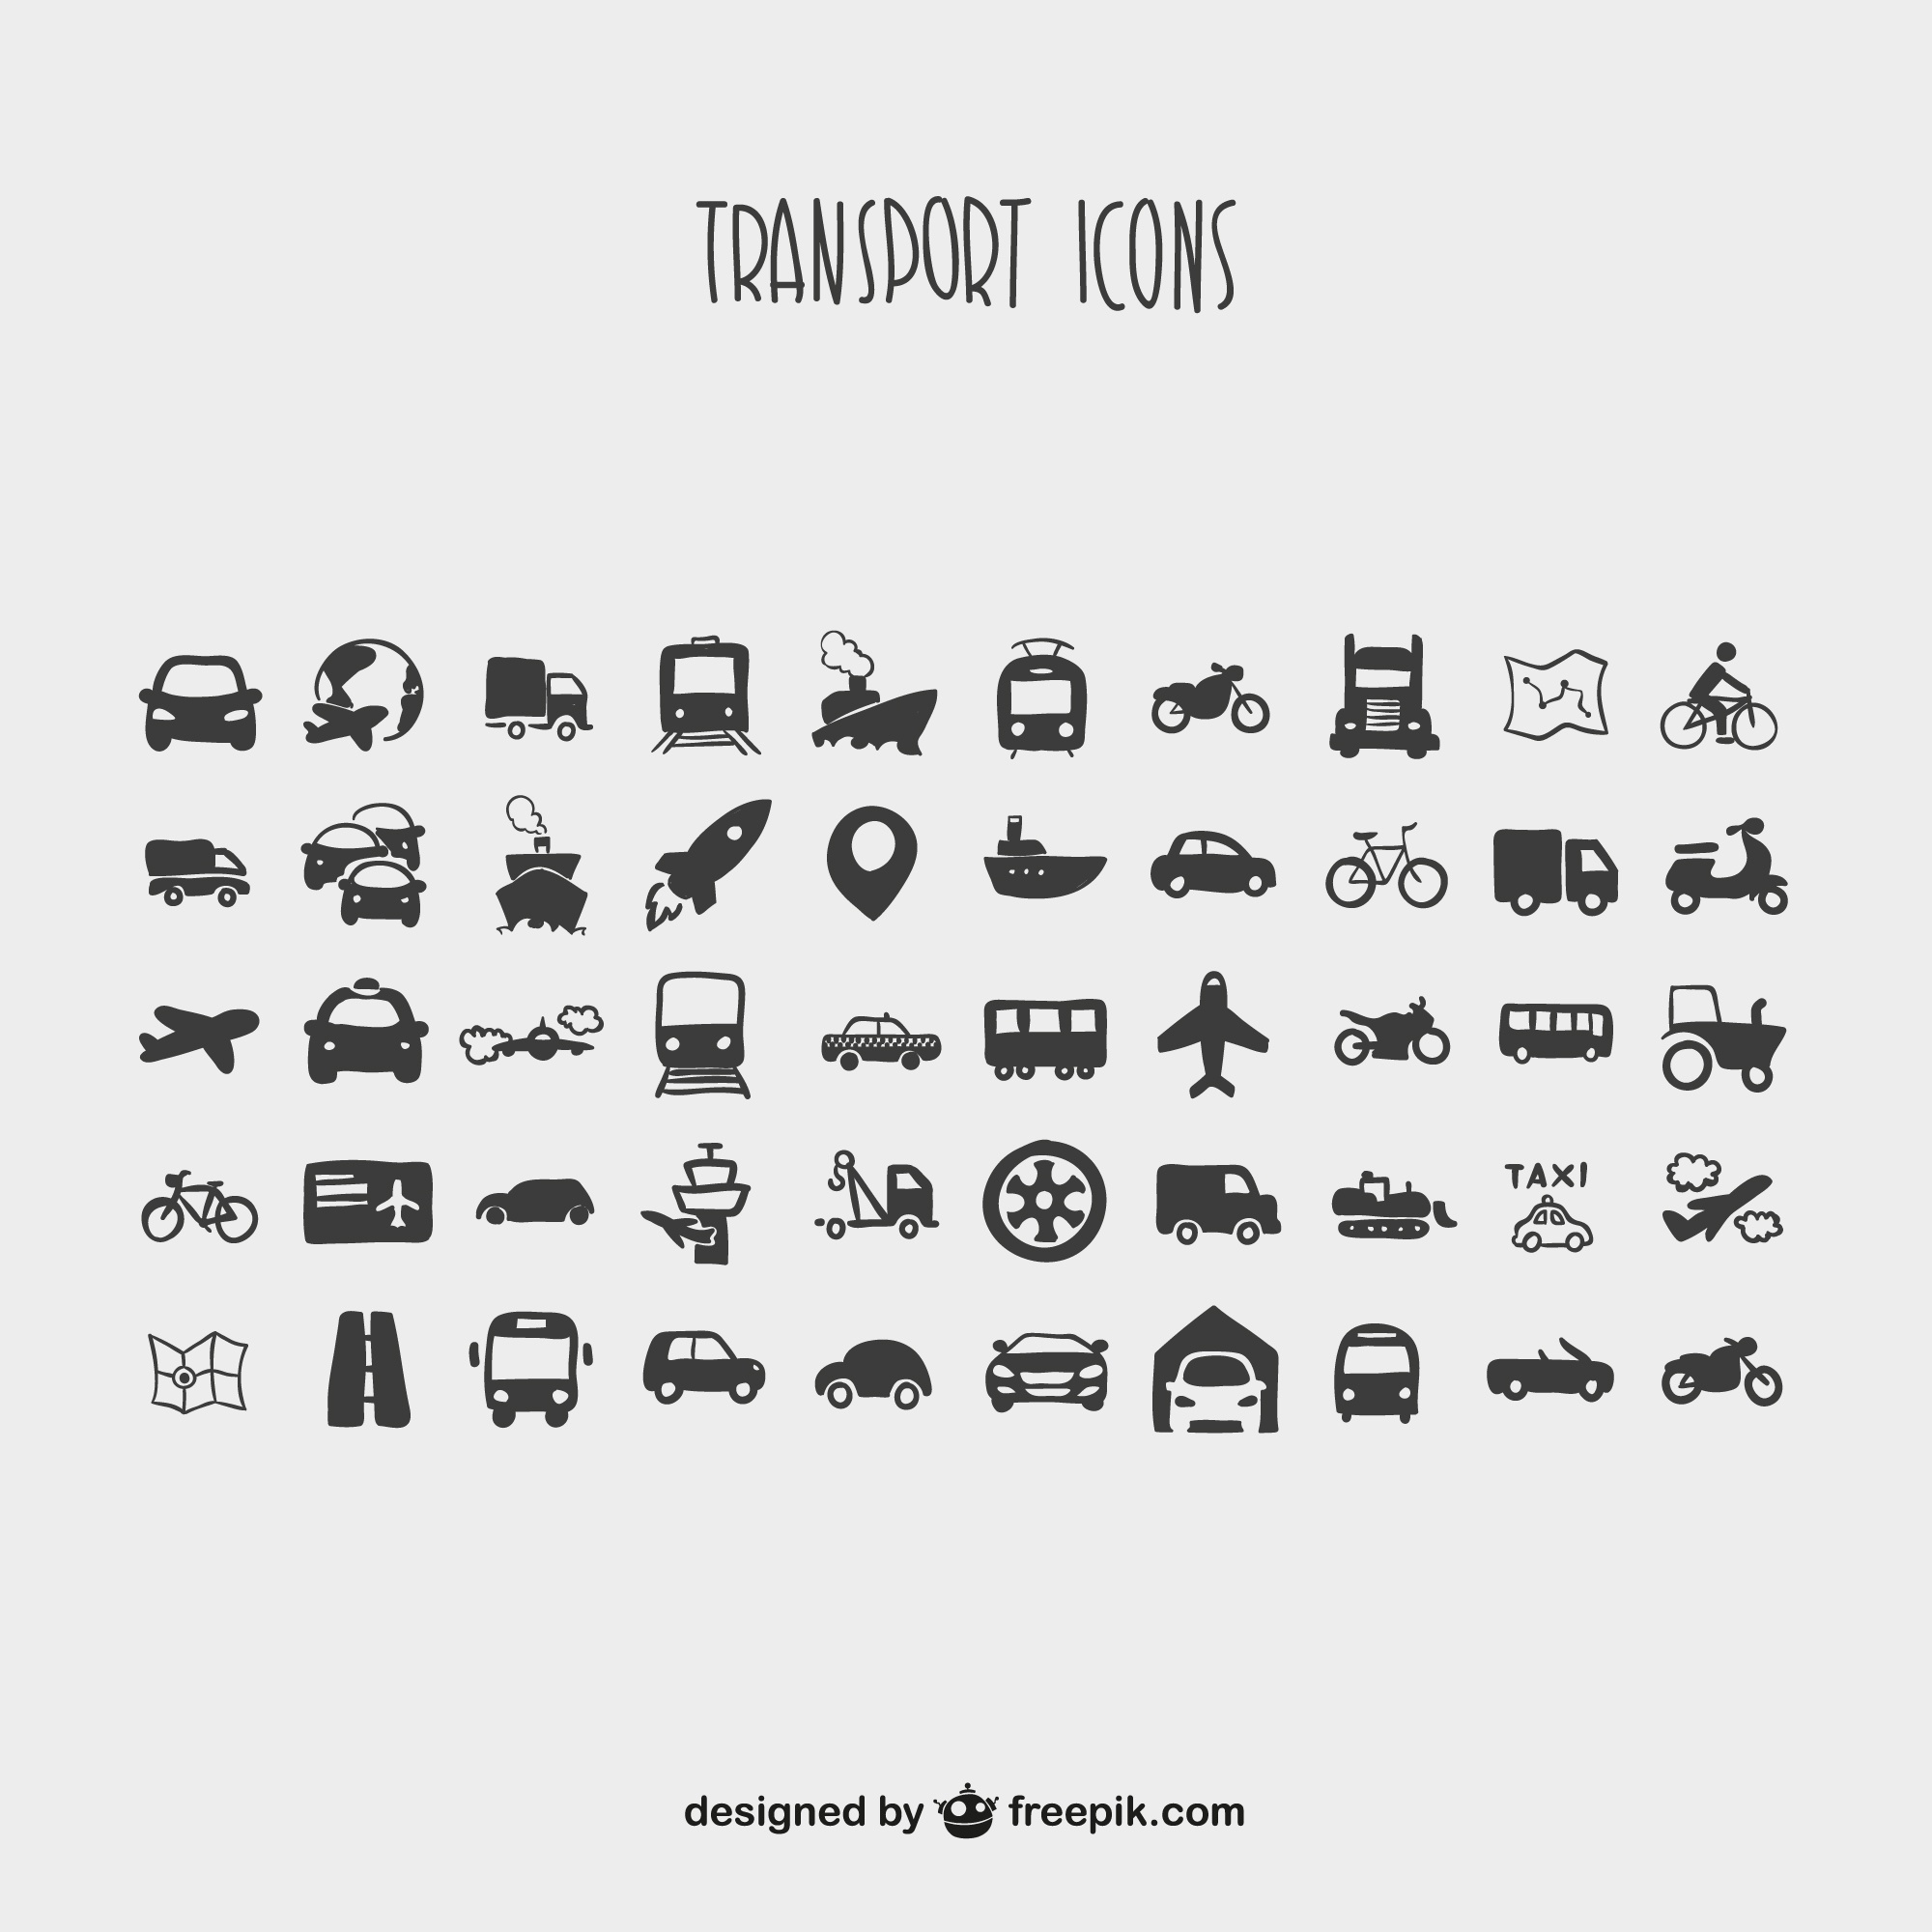 Cartoon collection of transport icons